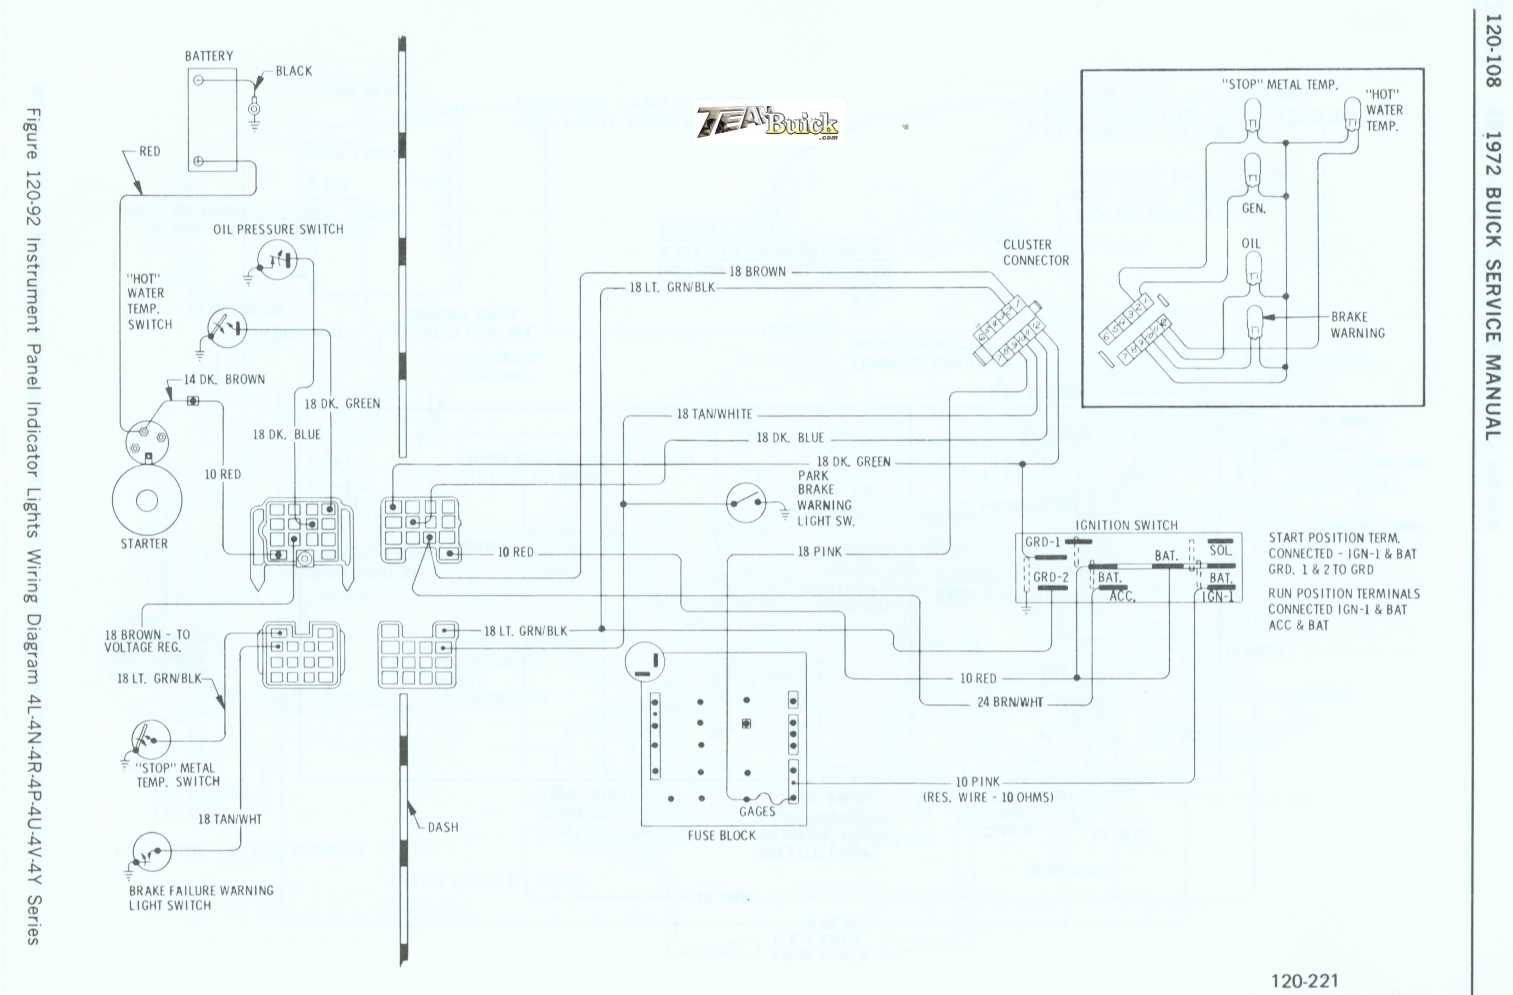 1972 Buick Instrument Panel Indicator Lights Wiring Diagram 4l